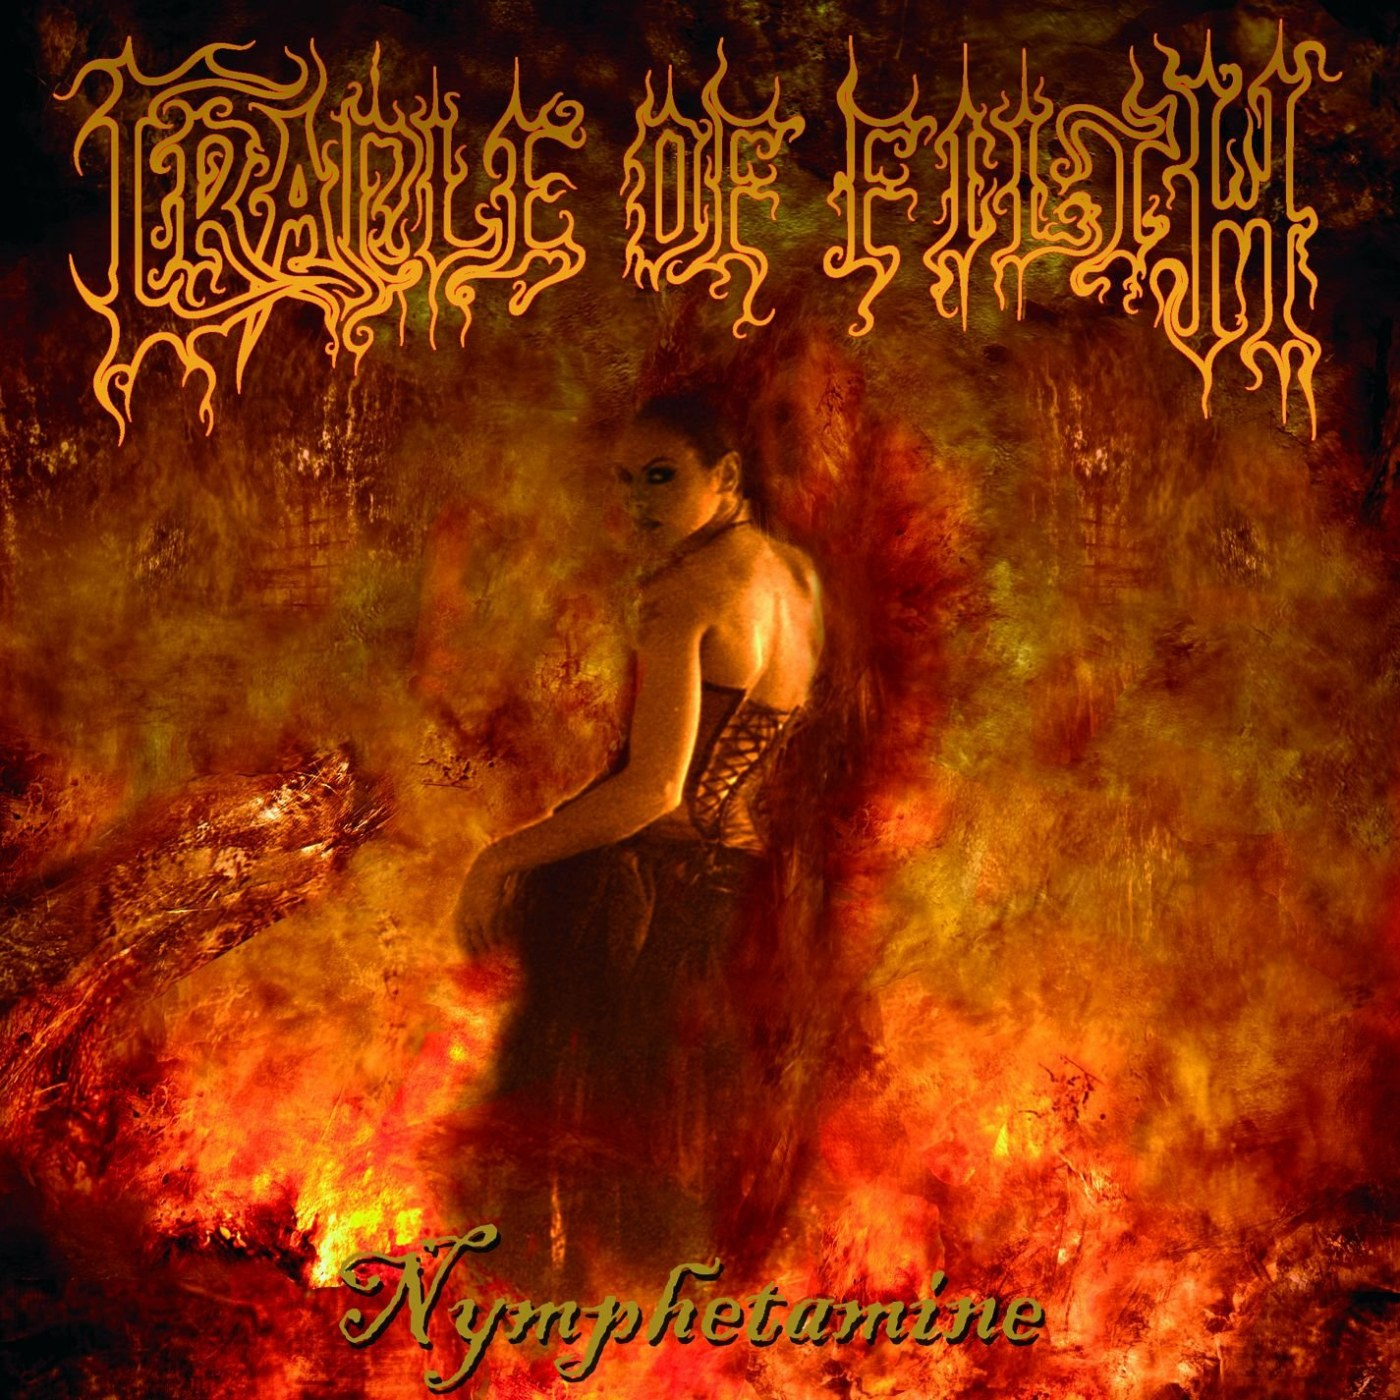 Review for Cradle of Filth - Nymphetamine